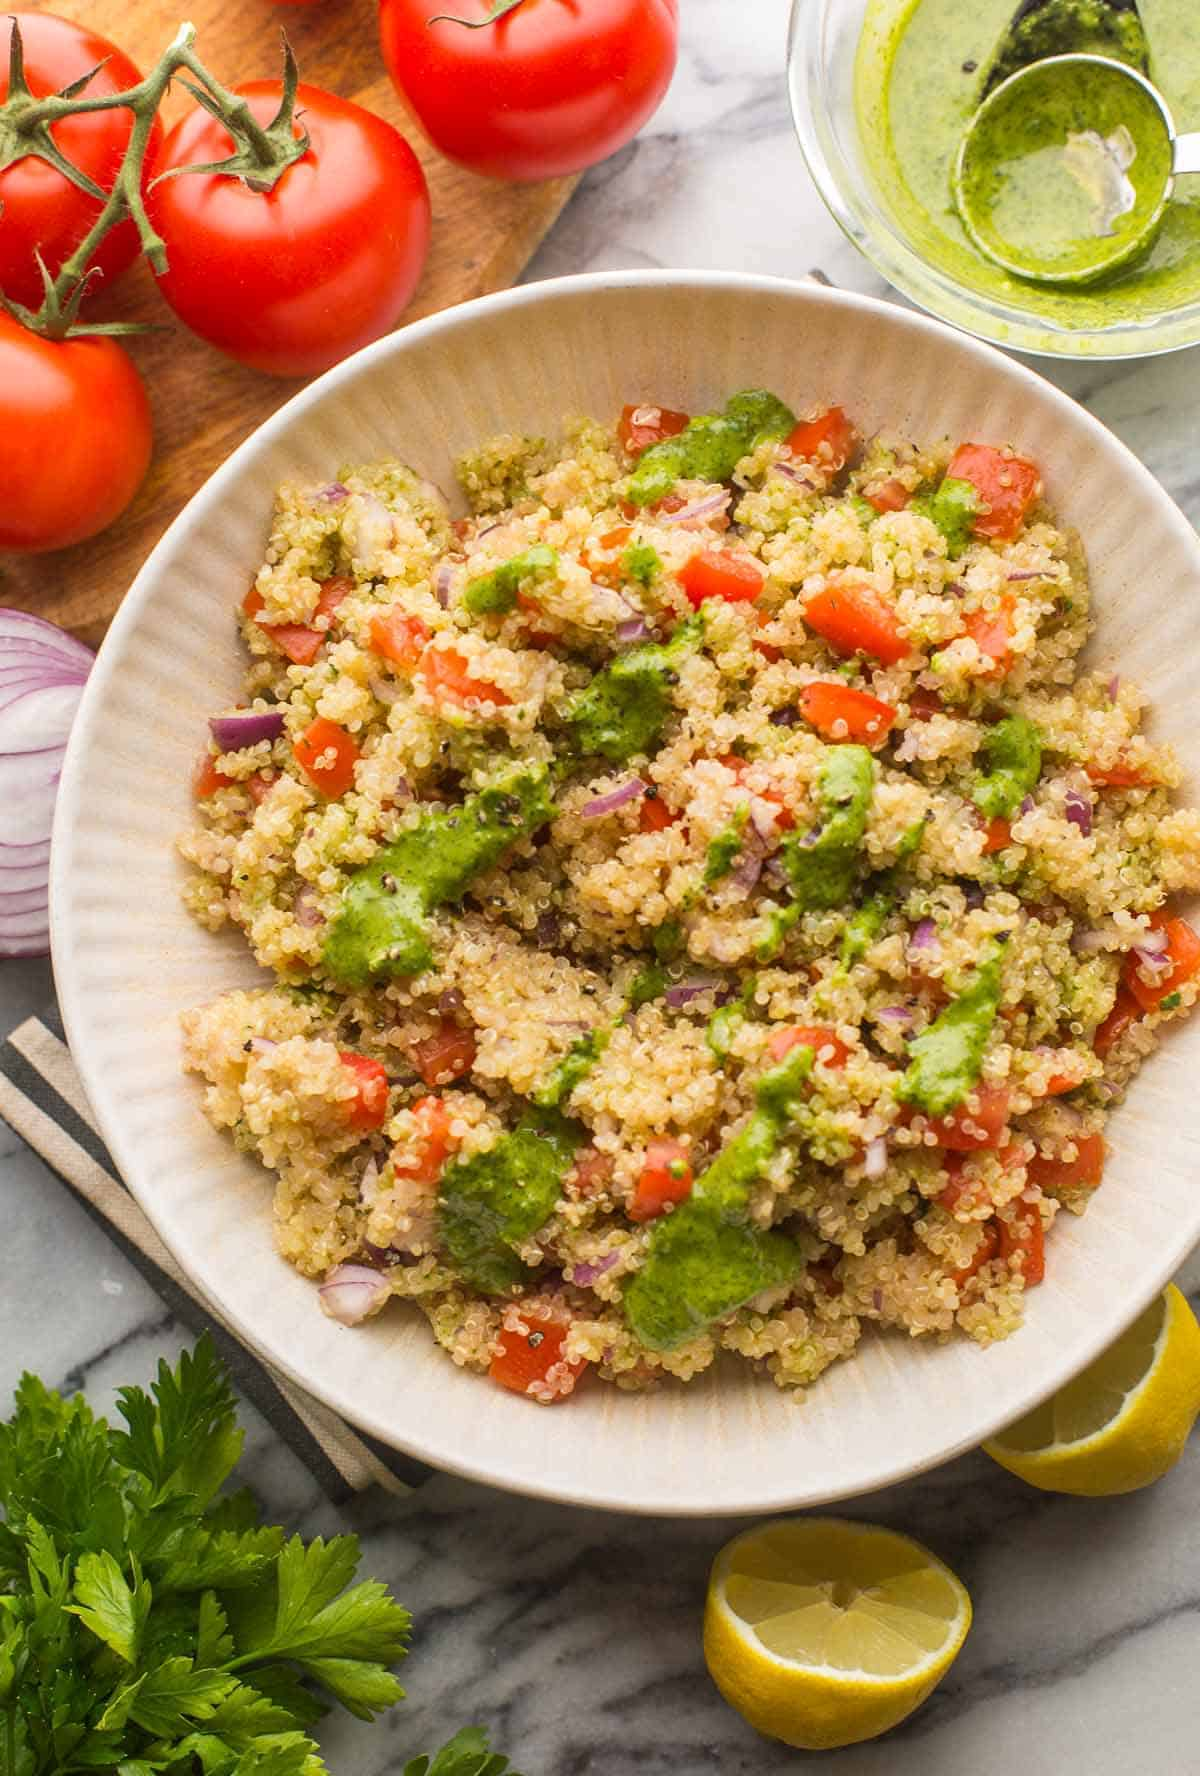 Tomato Quinoa Salad with a Zhoug Style Dressing